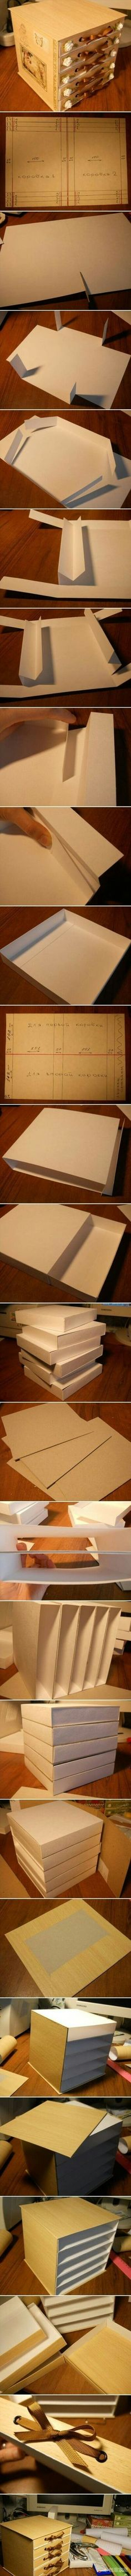 Ahhmazing what these boxes turn into: upcyle